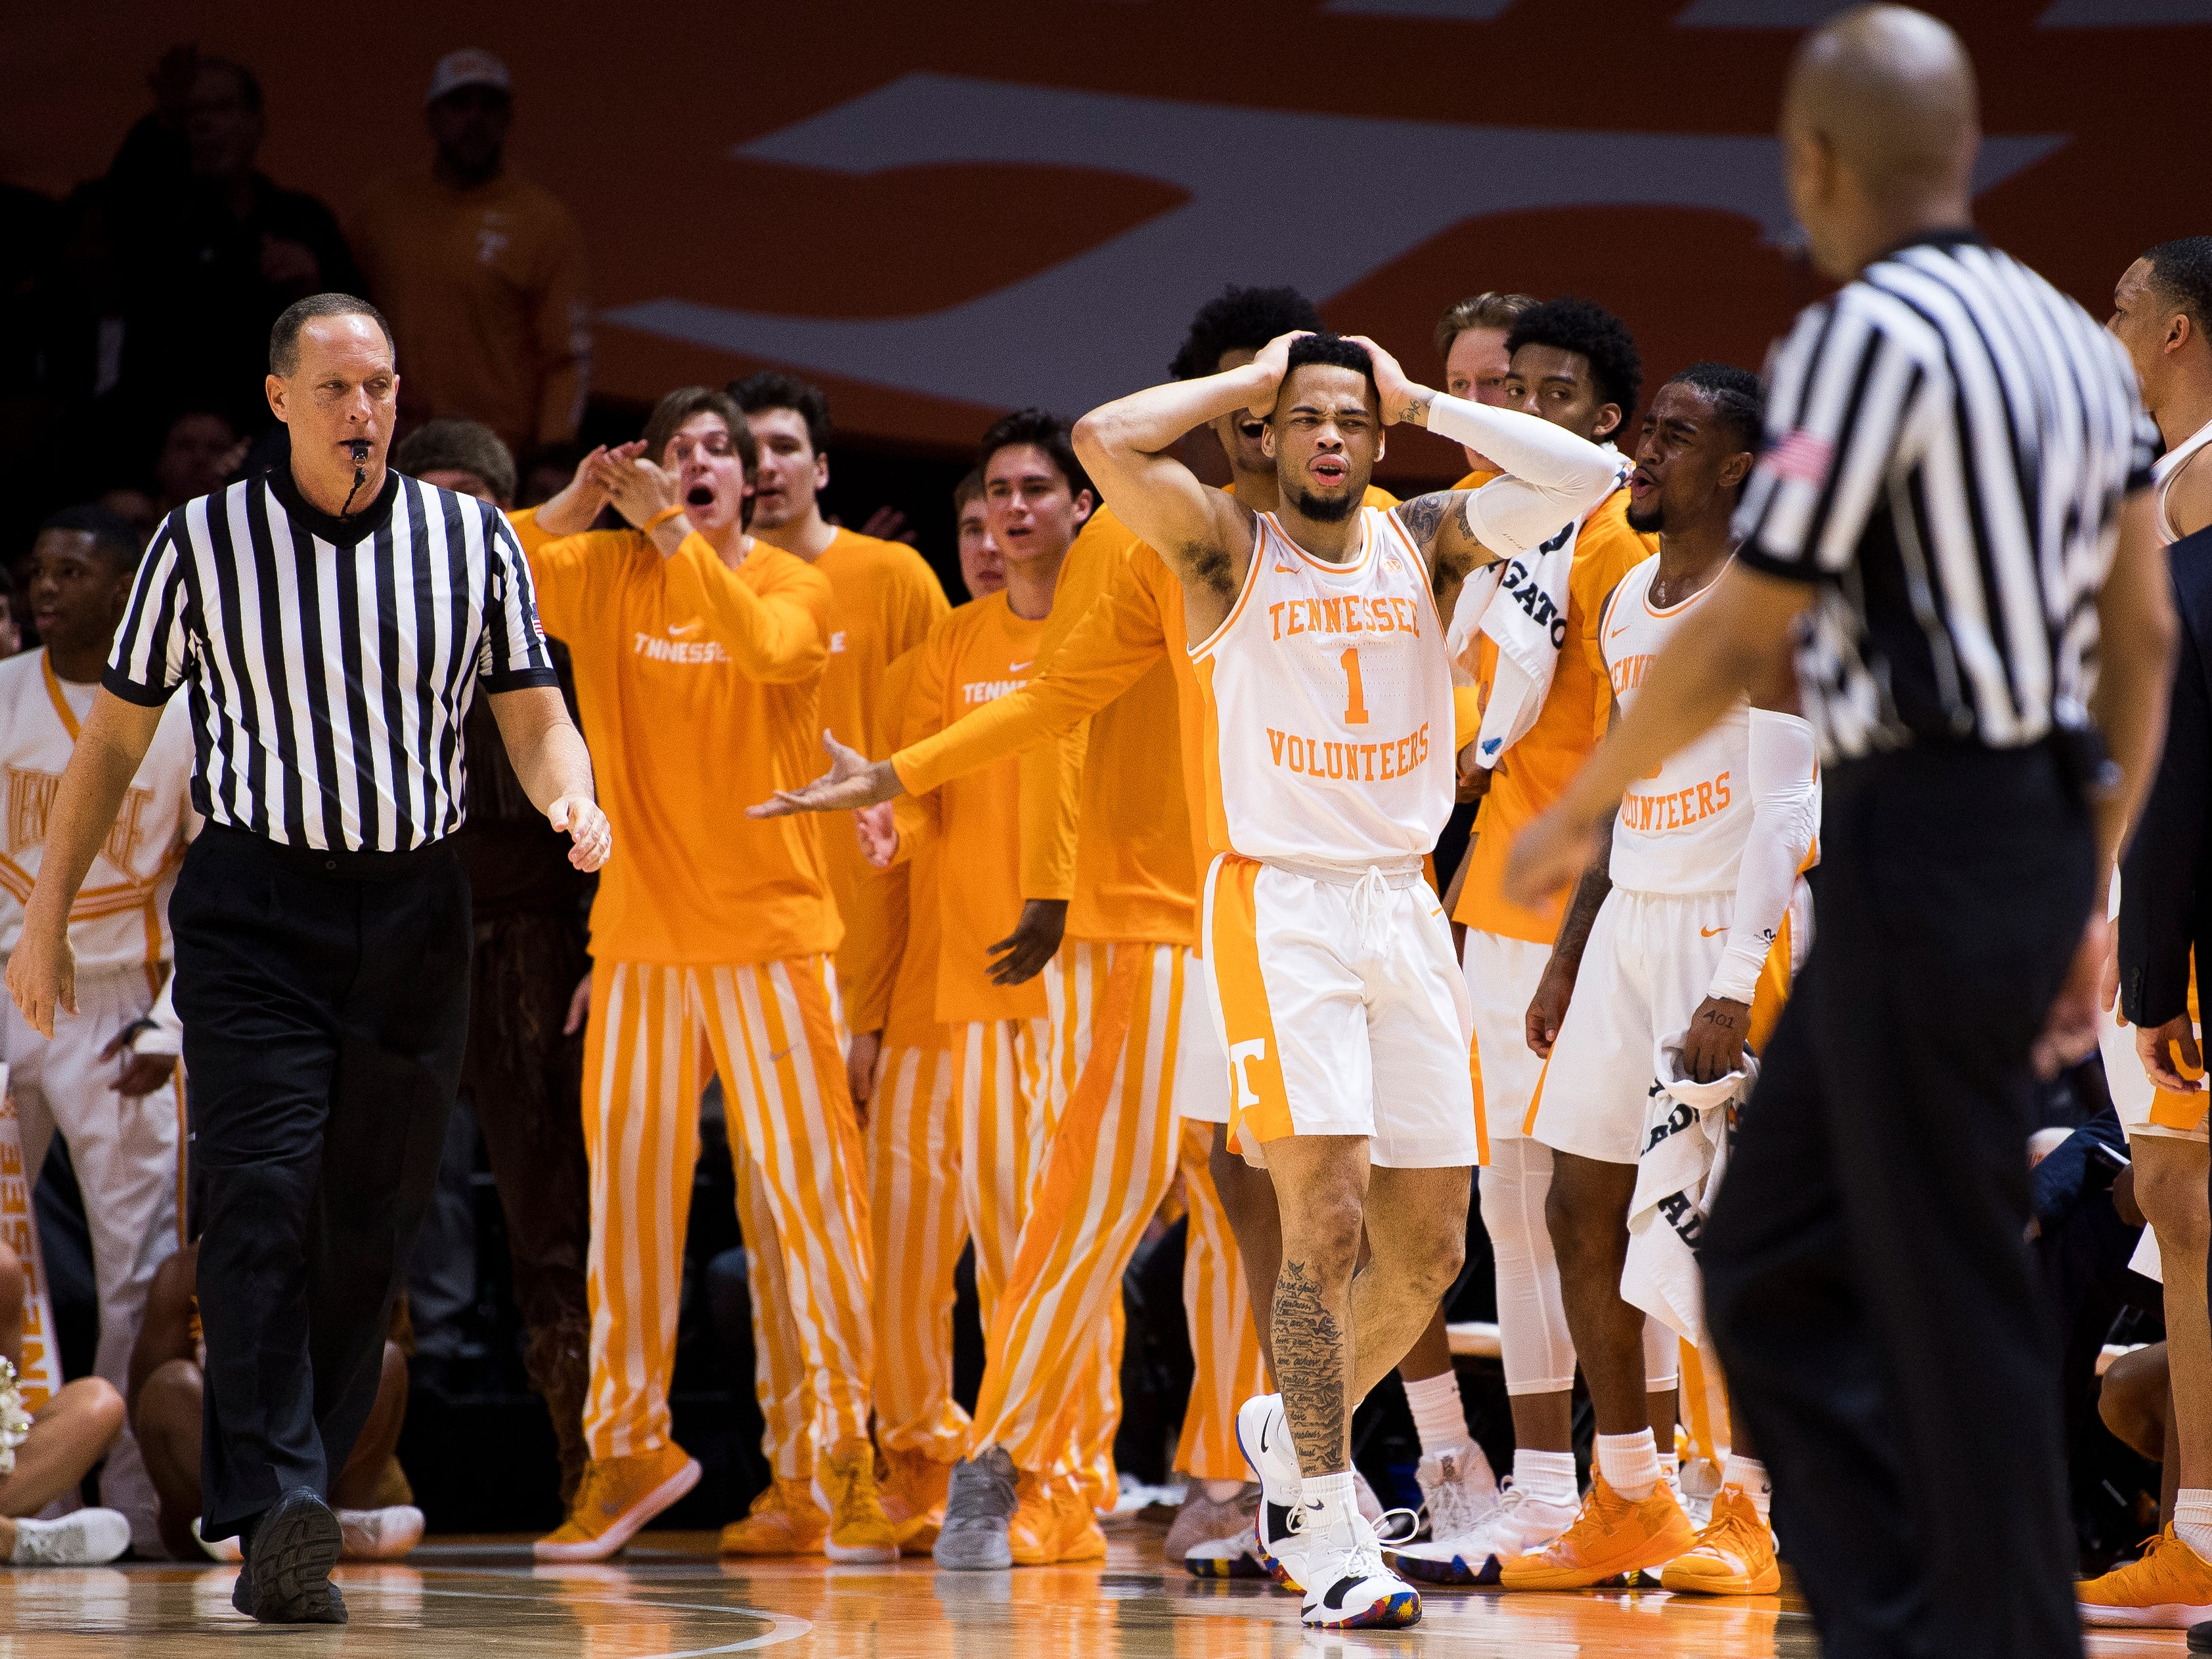 Tennessee guard Lamonte Turner (1) and the Tennessee bench reacts to a foul called against Turner during Tennessee's home basketball game against Kentucky at Thompson-Boling Arena in Knoxville on Saturday, March 2, 2019.